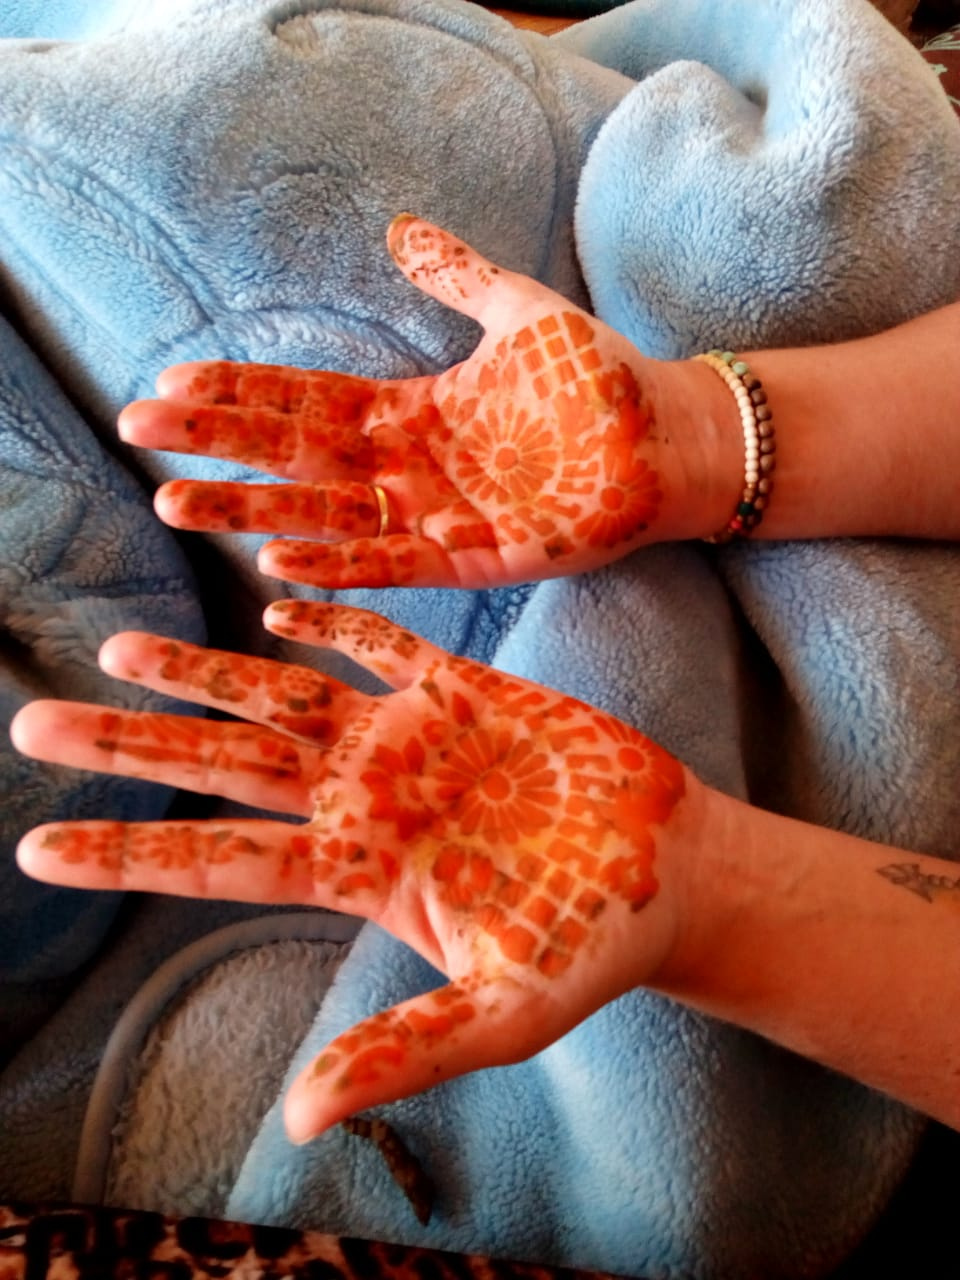 Ellis with henna on her hands in Imsouane